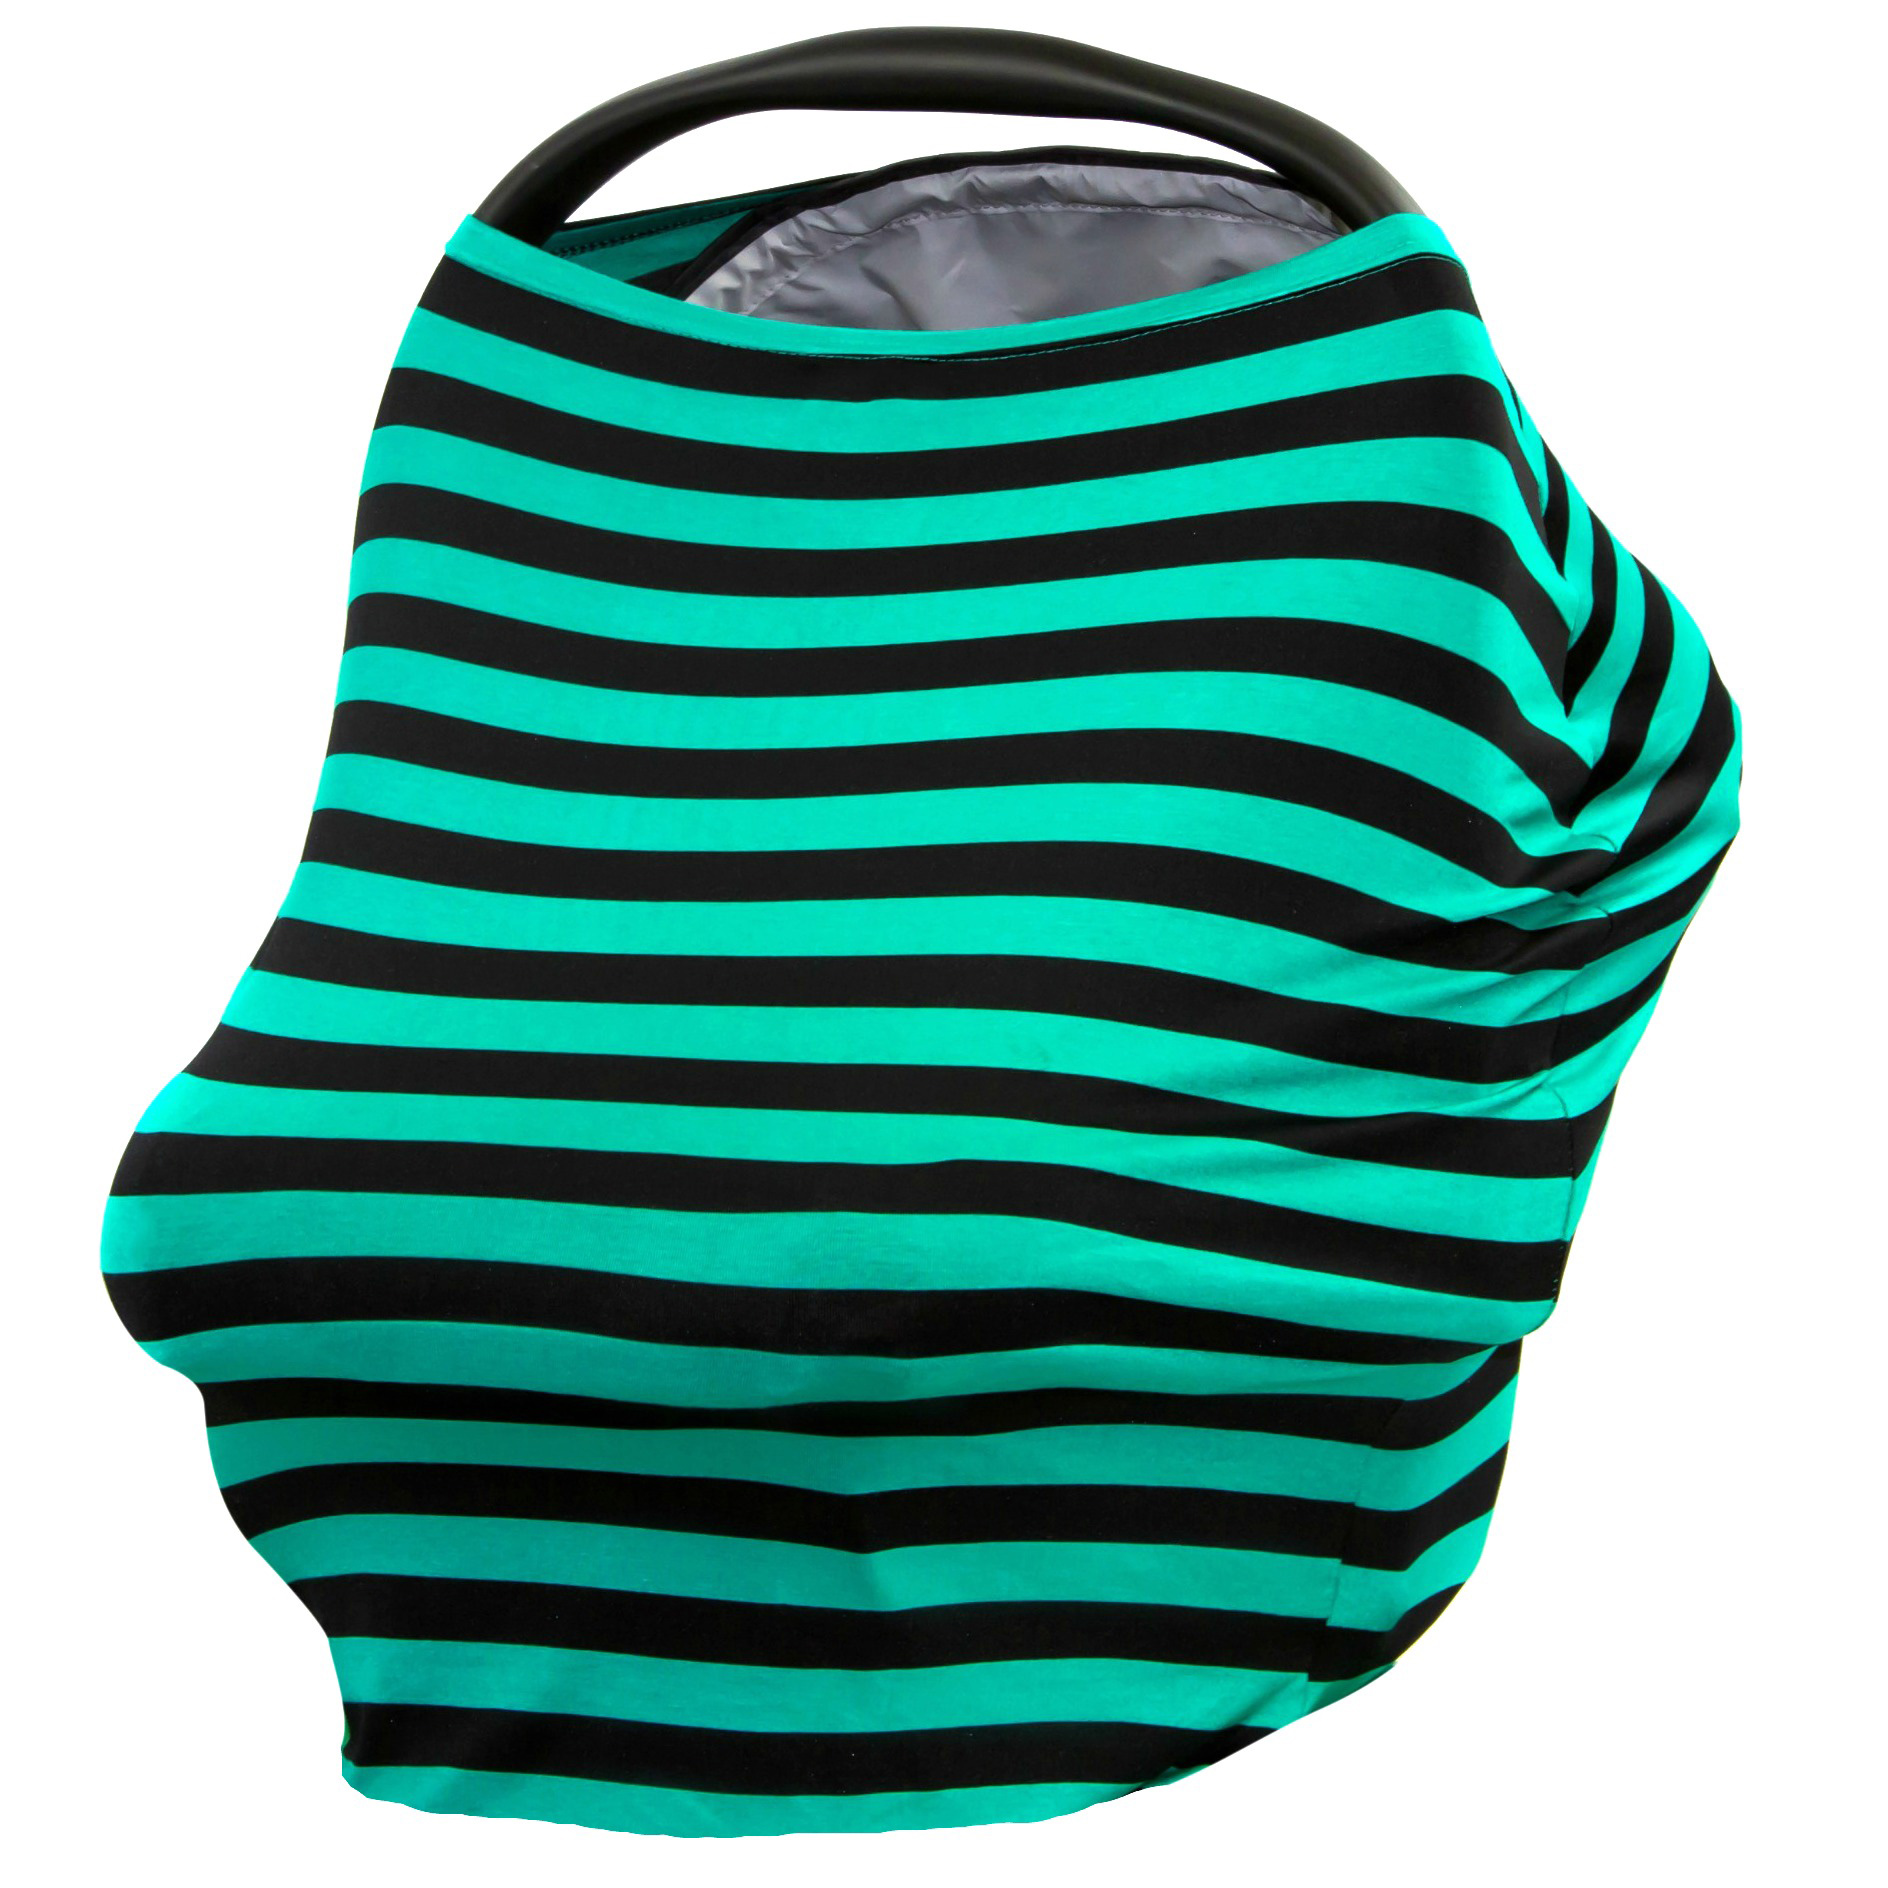 JLIKA Baby Car Seat Canopy Cover and Stretchy Nursing Cover - Teal Black Stripe